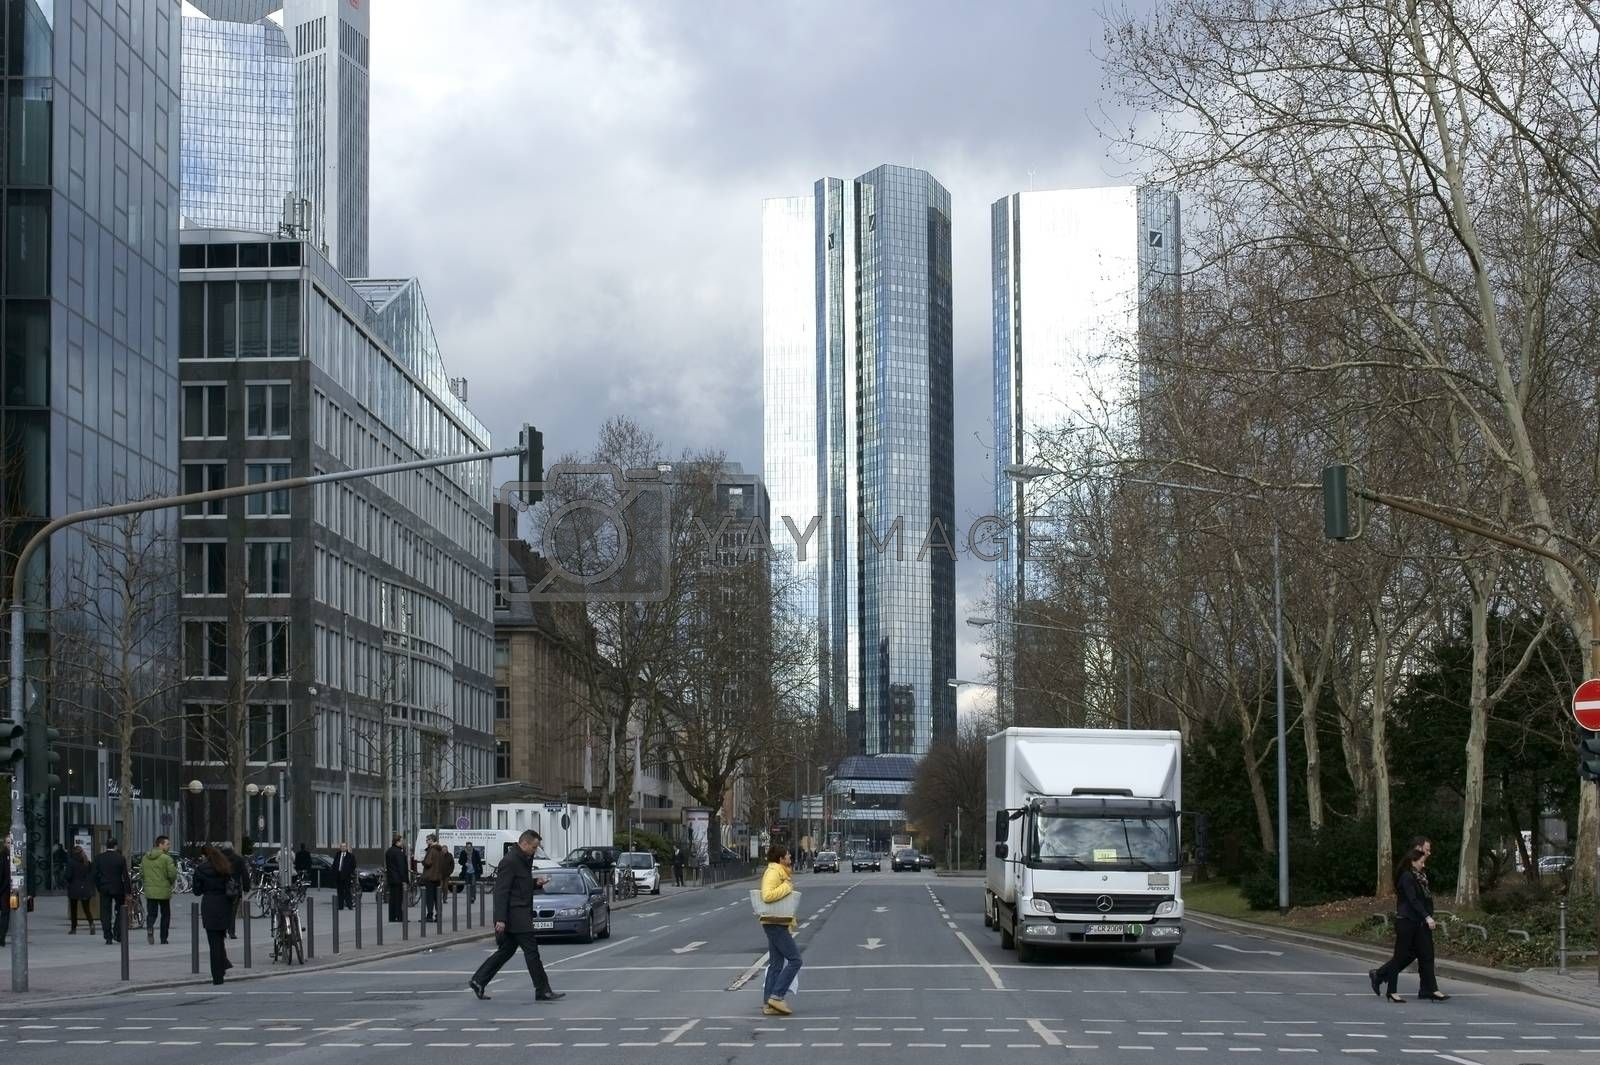 Frankfurt, Germany - February 19, 2014: Pedestrians cross a traffic light intersection with the high-rise building of the Deutsche Bank at the end of the street on February 19, 2014 in Frankfurt.